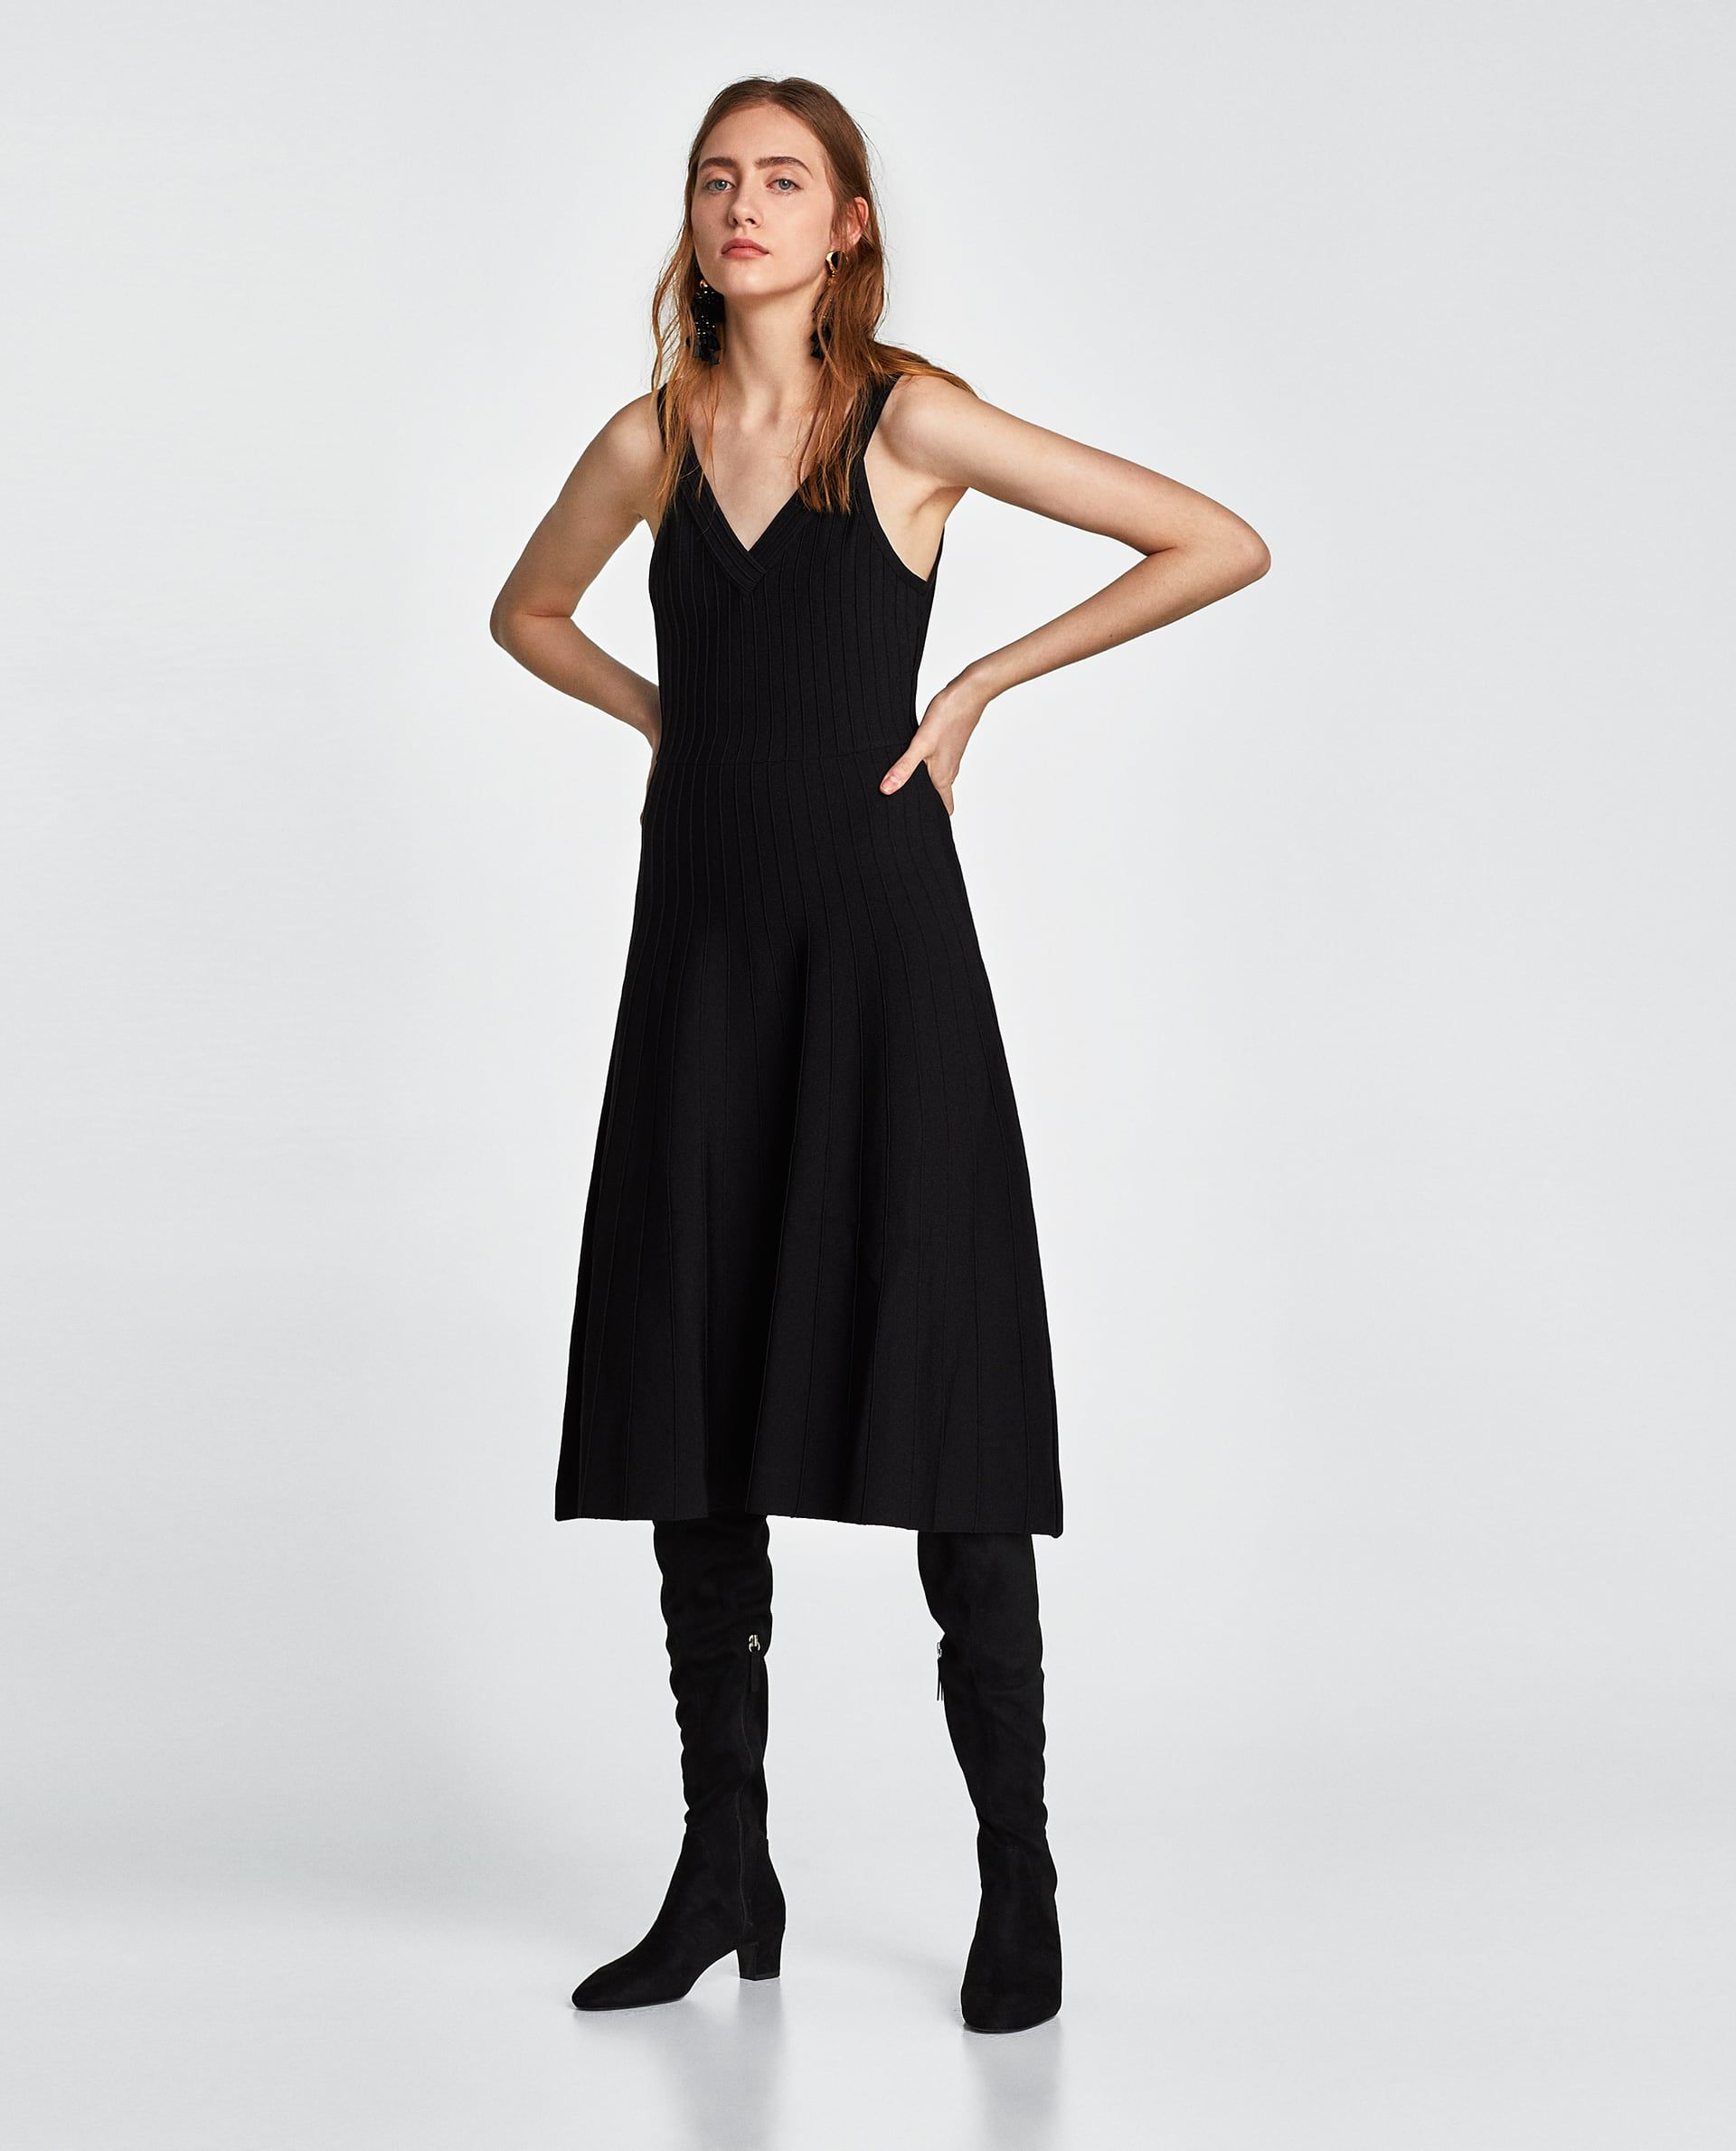 Zara woman long knit dress winter shopping pinterest zara